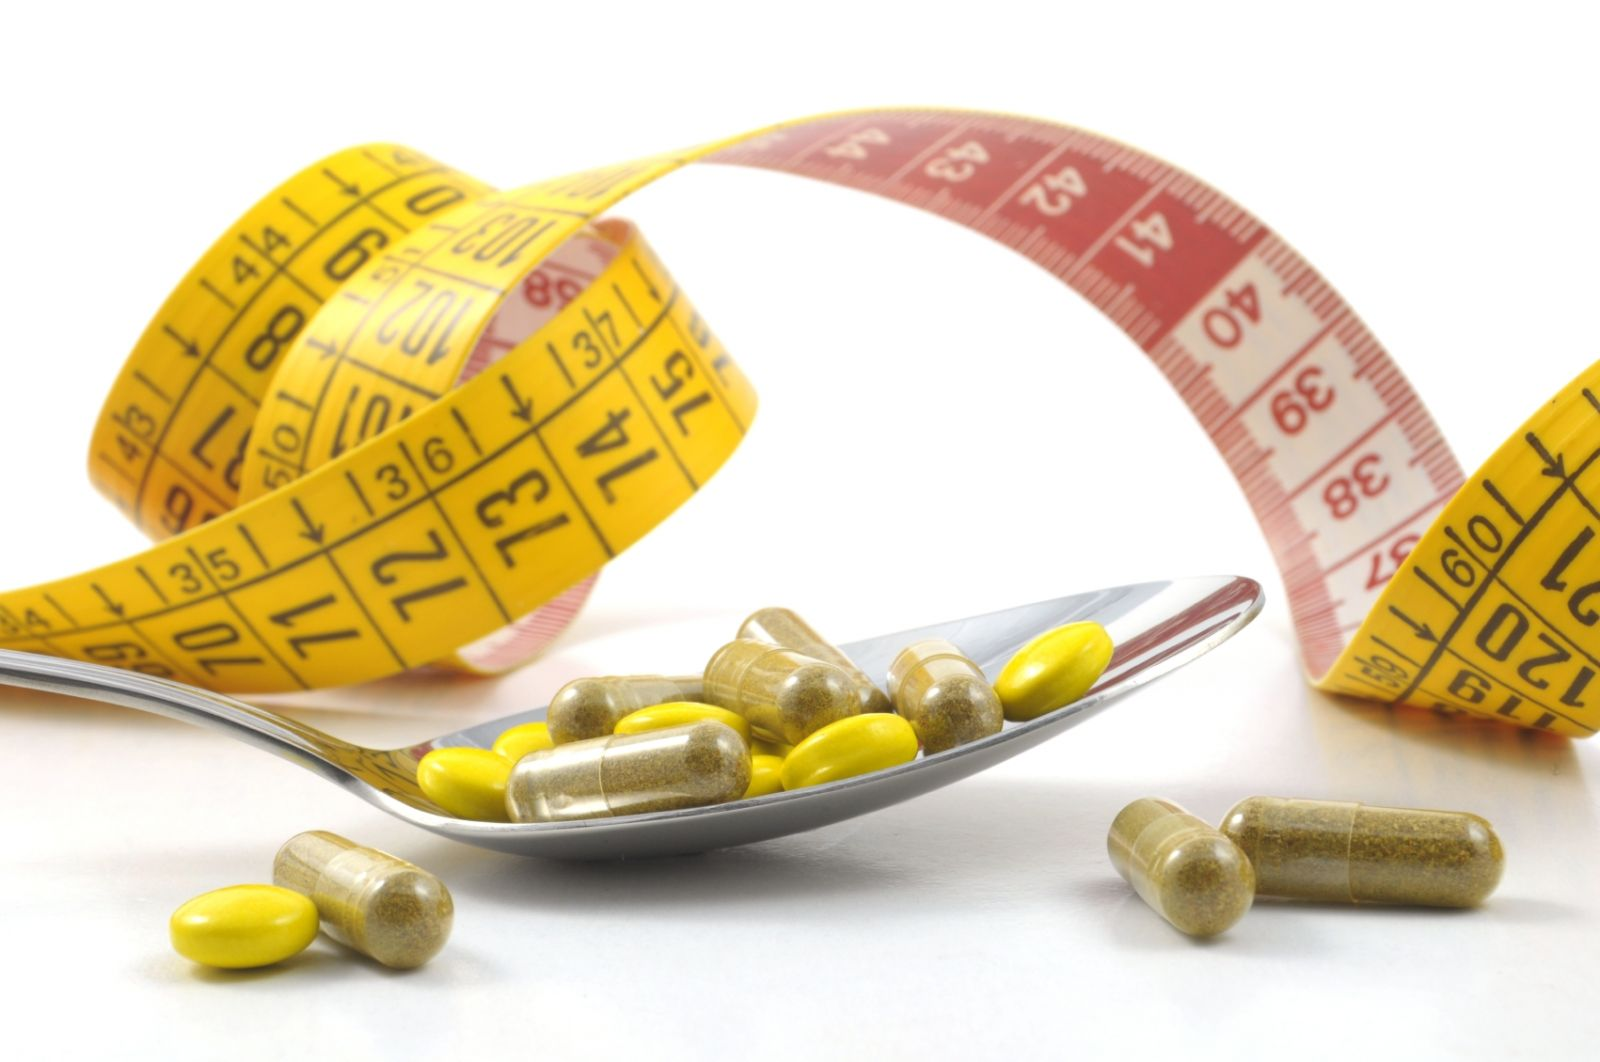 Weight-loss pills